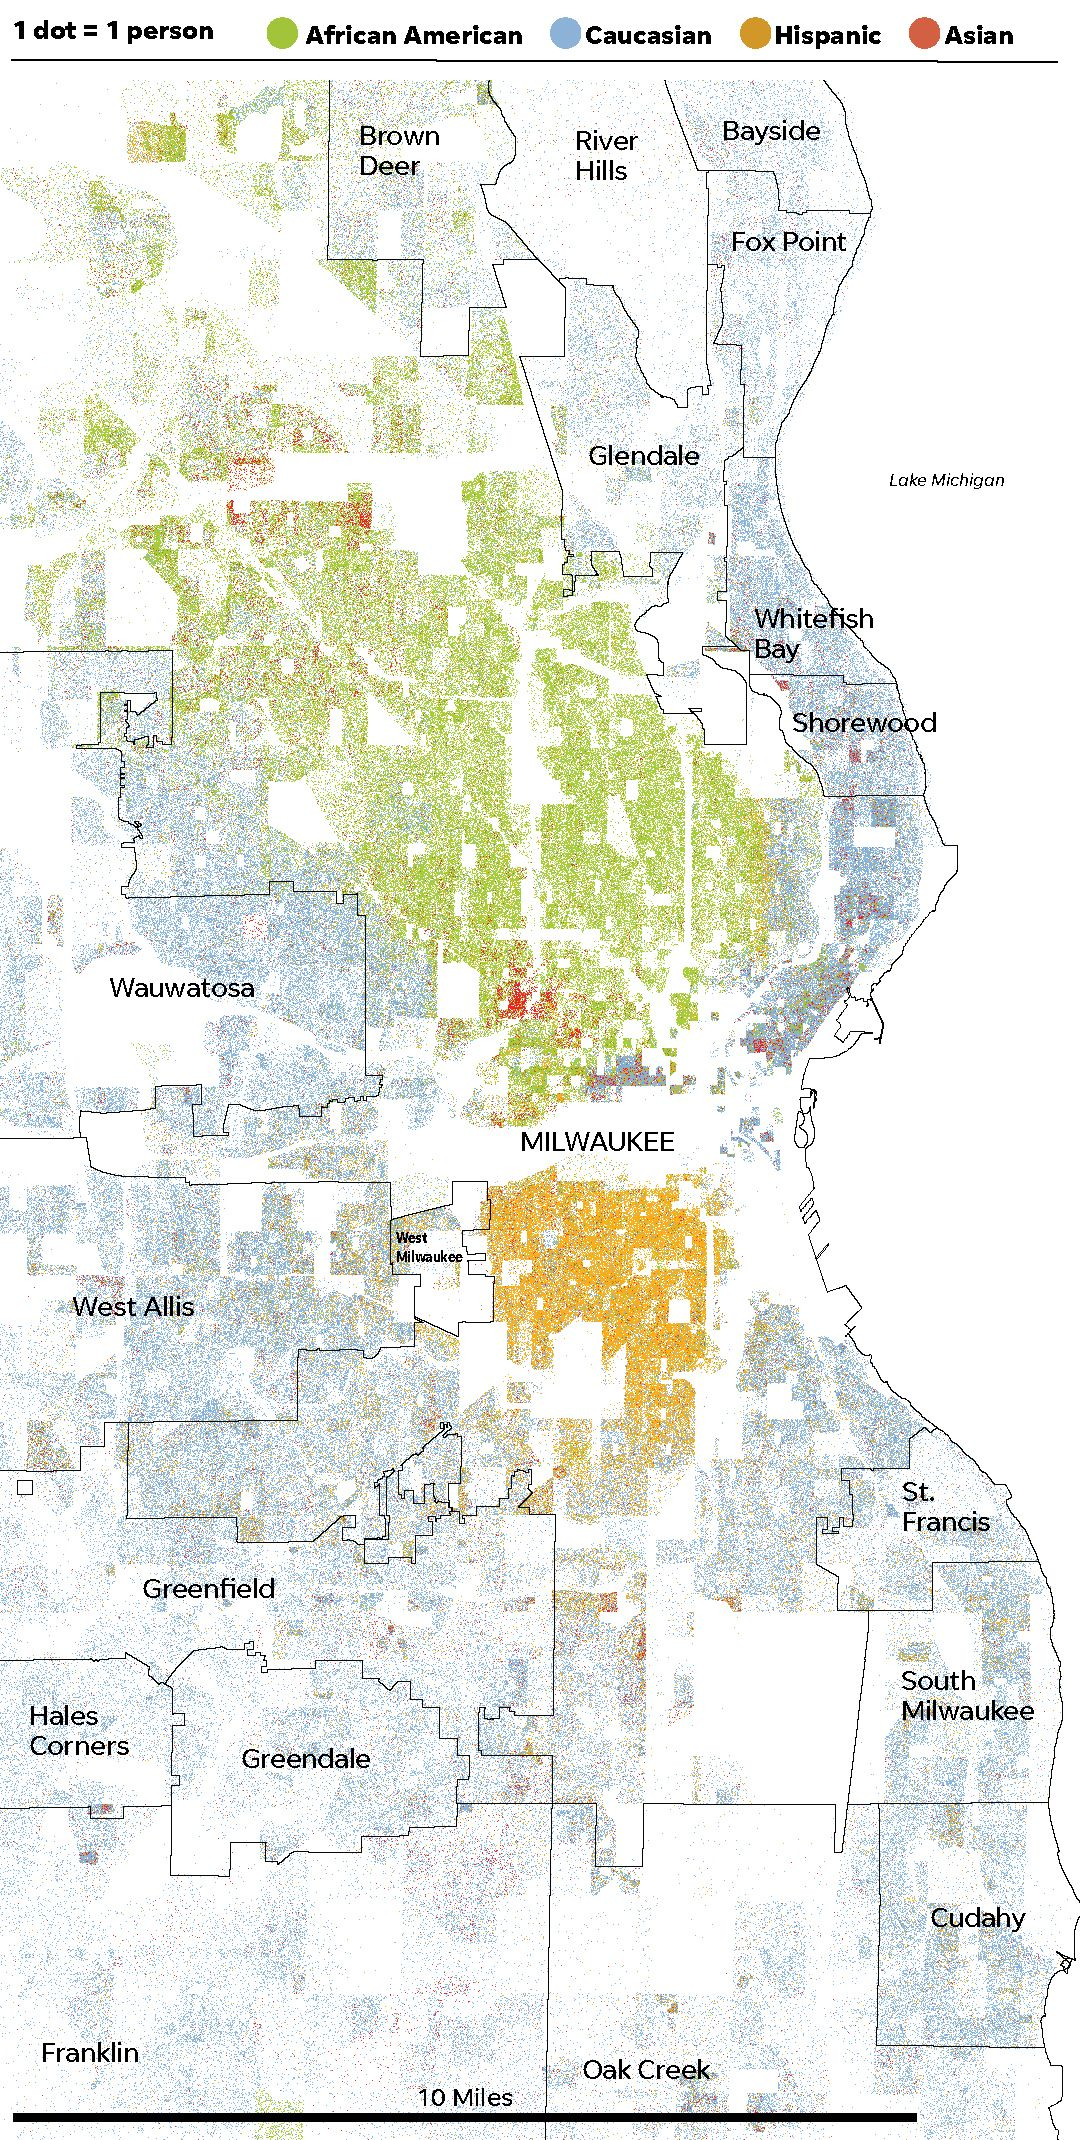 Milwaukee segregation: How we measure and define it